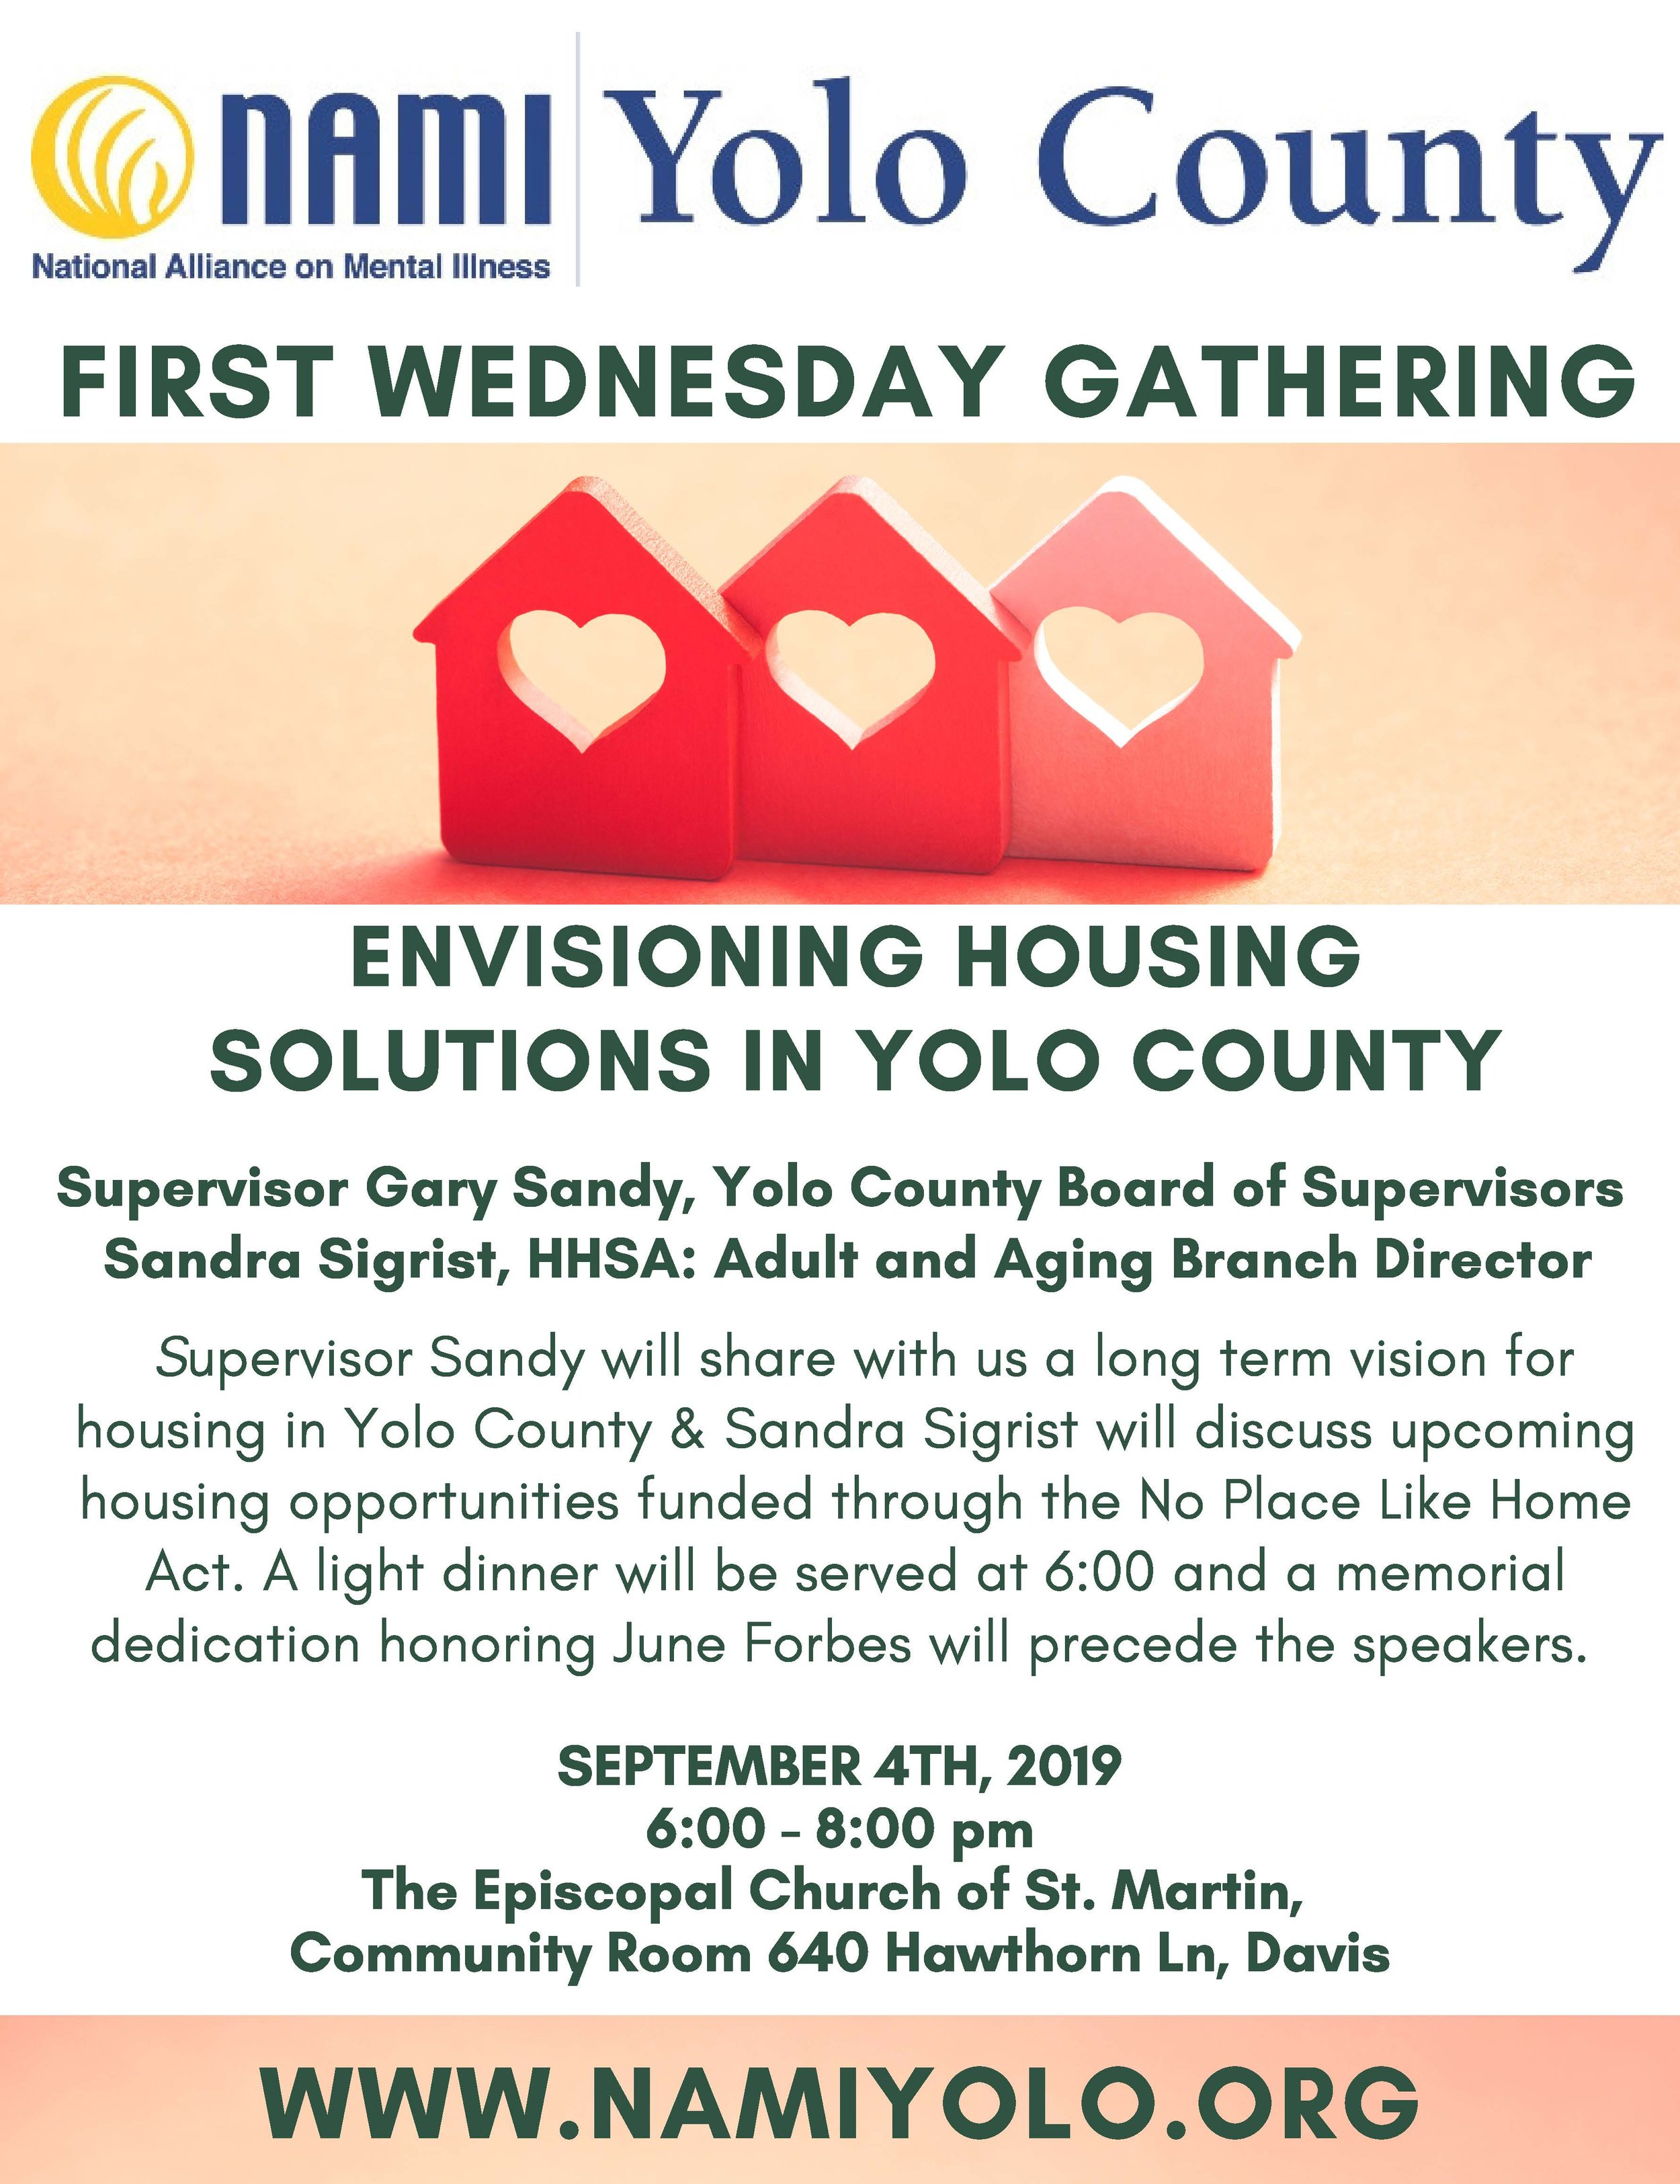 envisioning housing solutions in yolo county (2).jpg